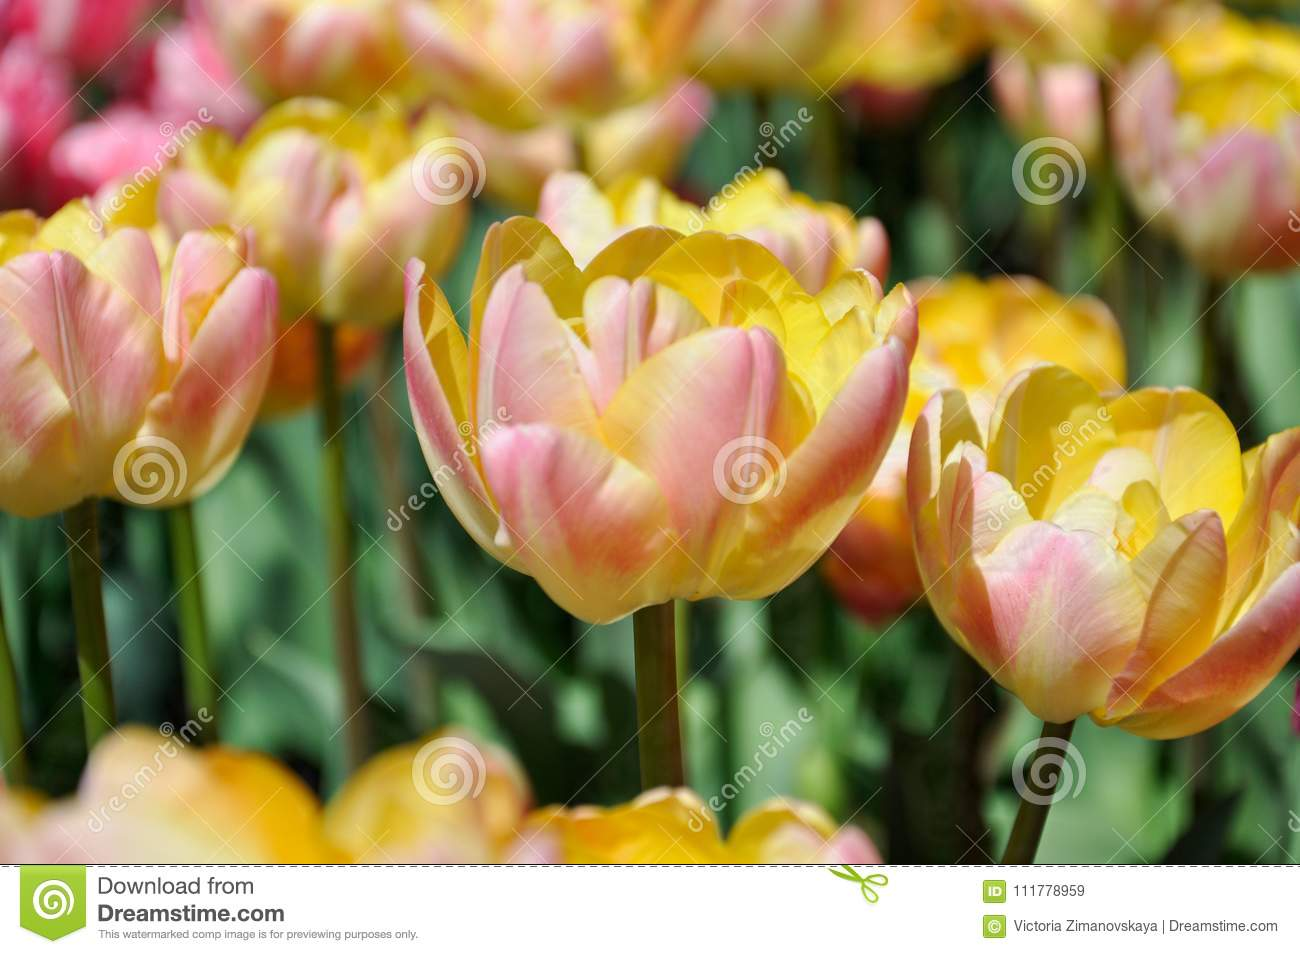 Very delicate yellow-pink tulips in the spring garden